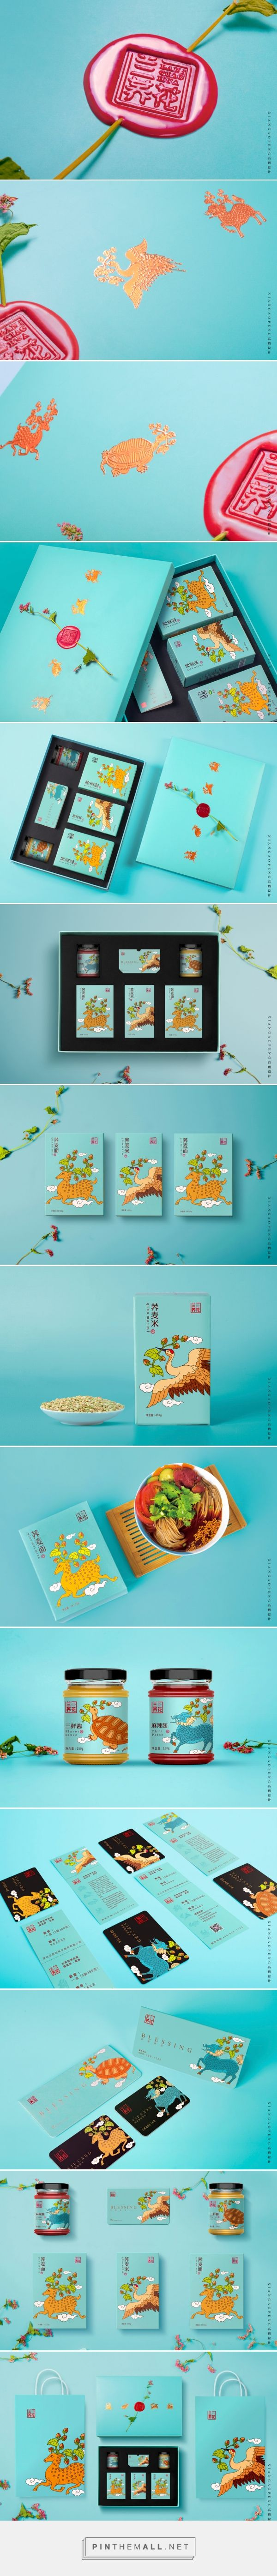 LANQIAOHUA food packaging design by Xiangaopeng - http://www.packagingoftheworld.com/2017/09/lanqiaohua.html